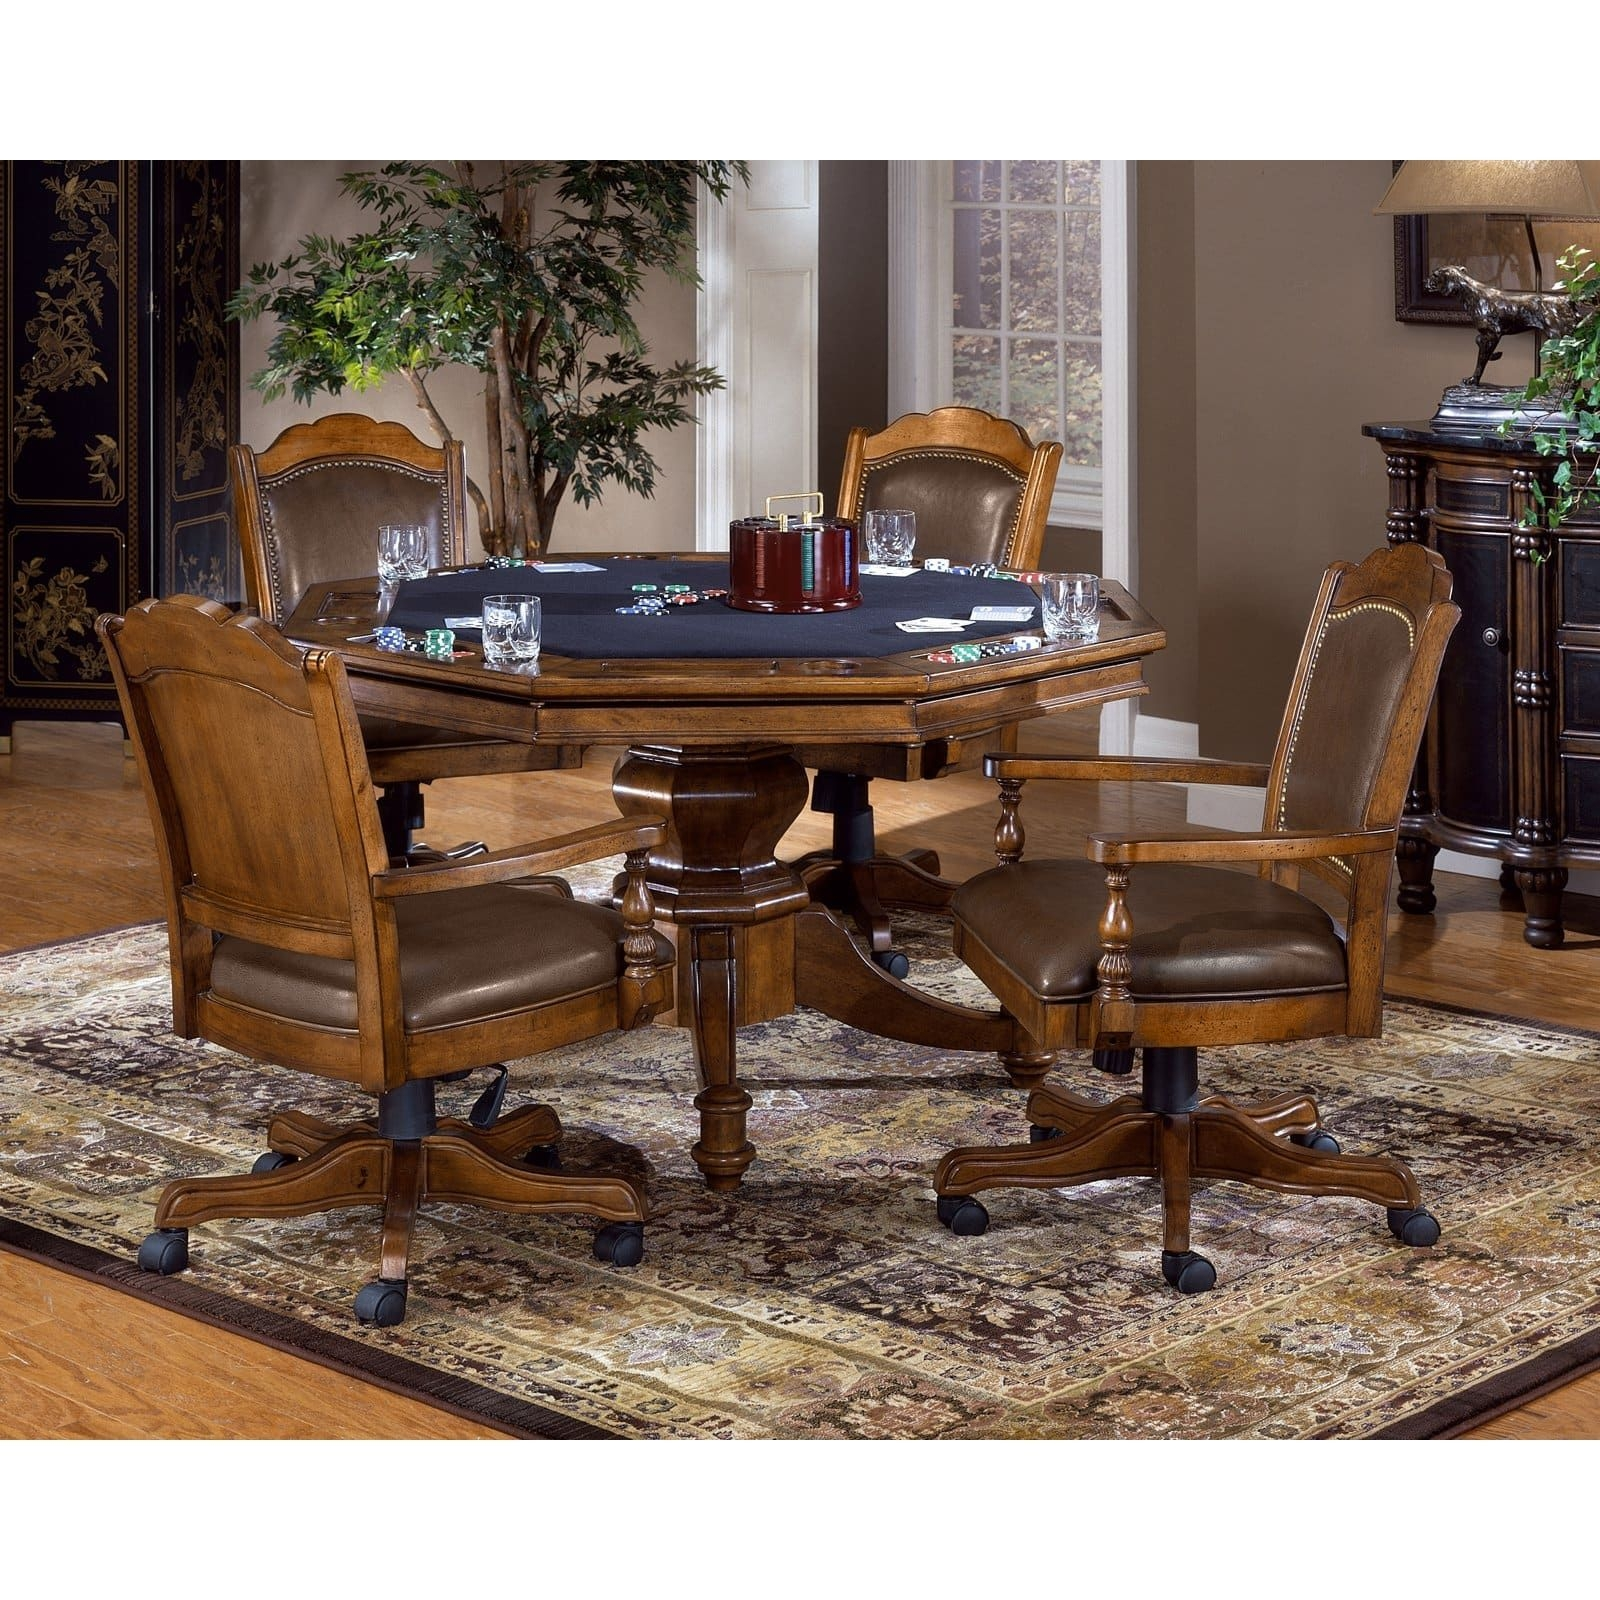 Hillsdale Nassau 5 Piece Game Table Set  Poker Tables At Hayneedle